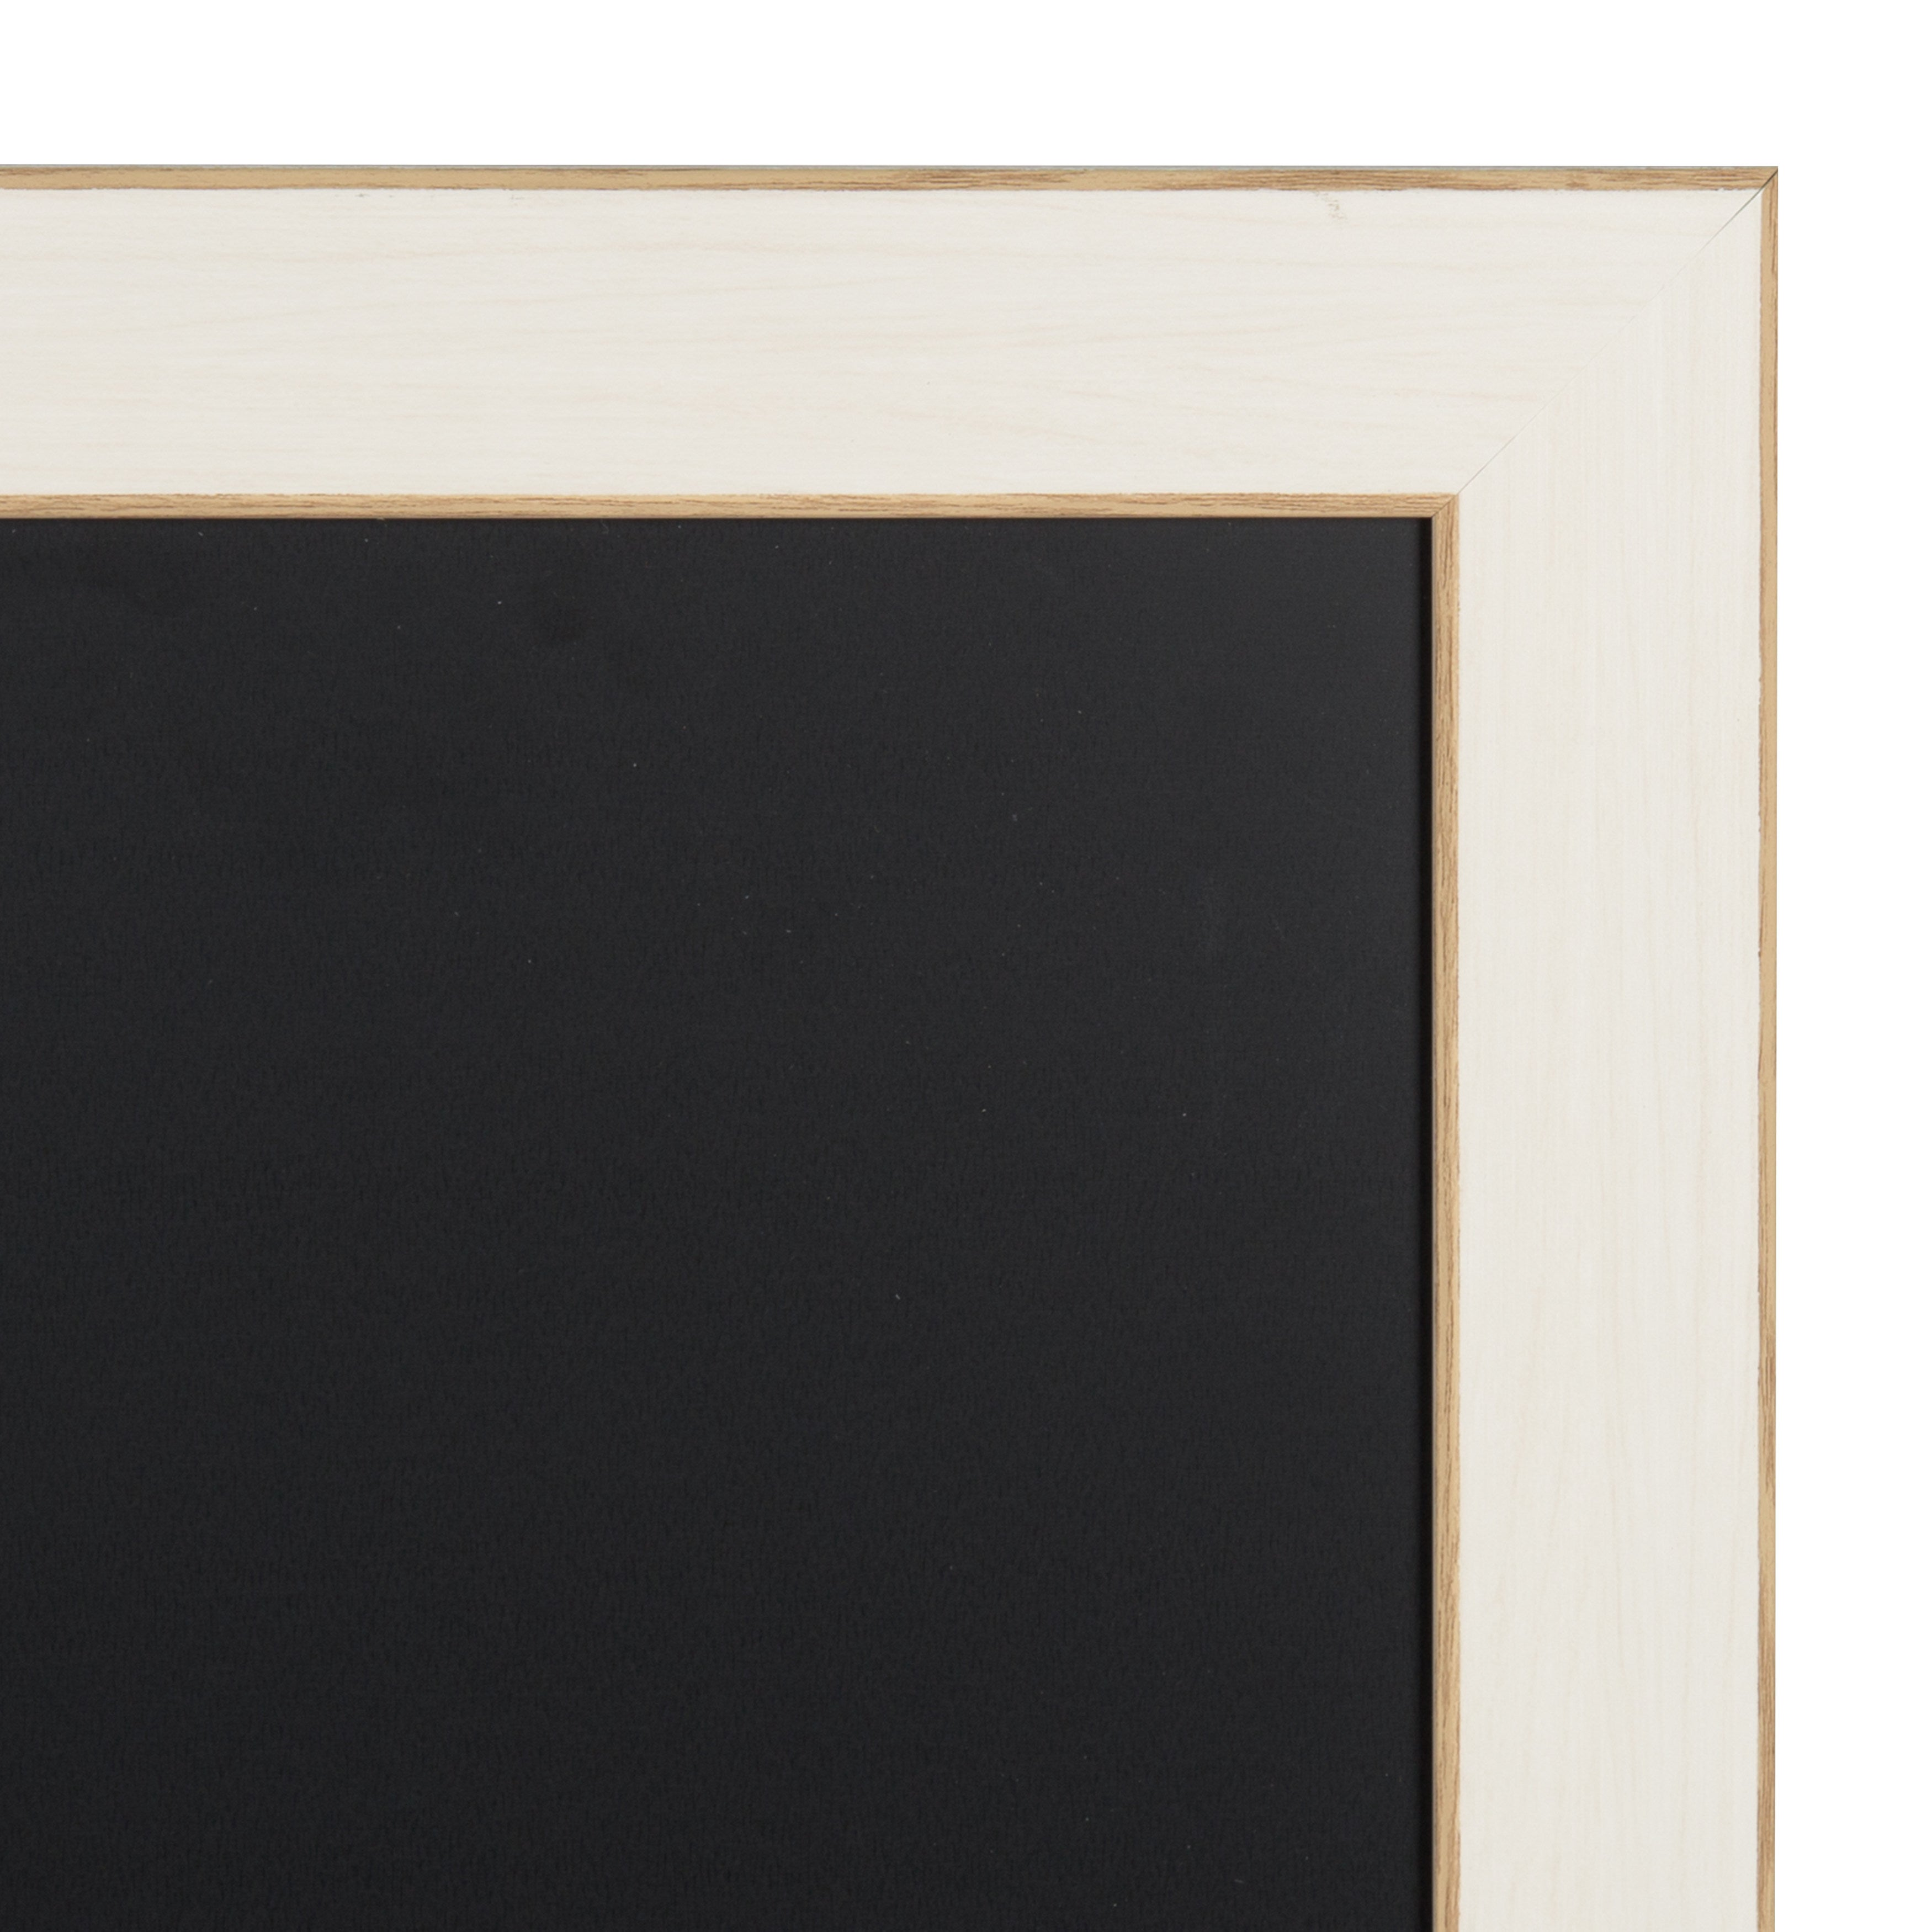 Black Framed Magnetic Chalkboard - Free Shipping On Orders Over $45 ...